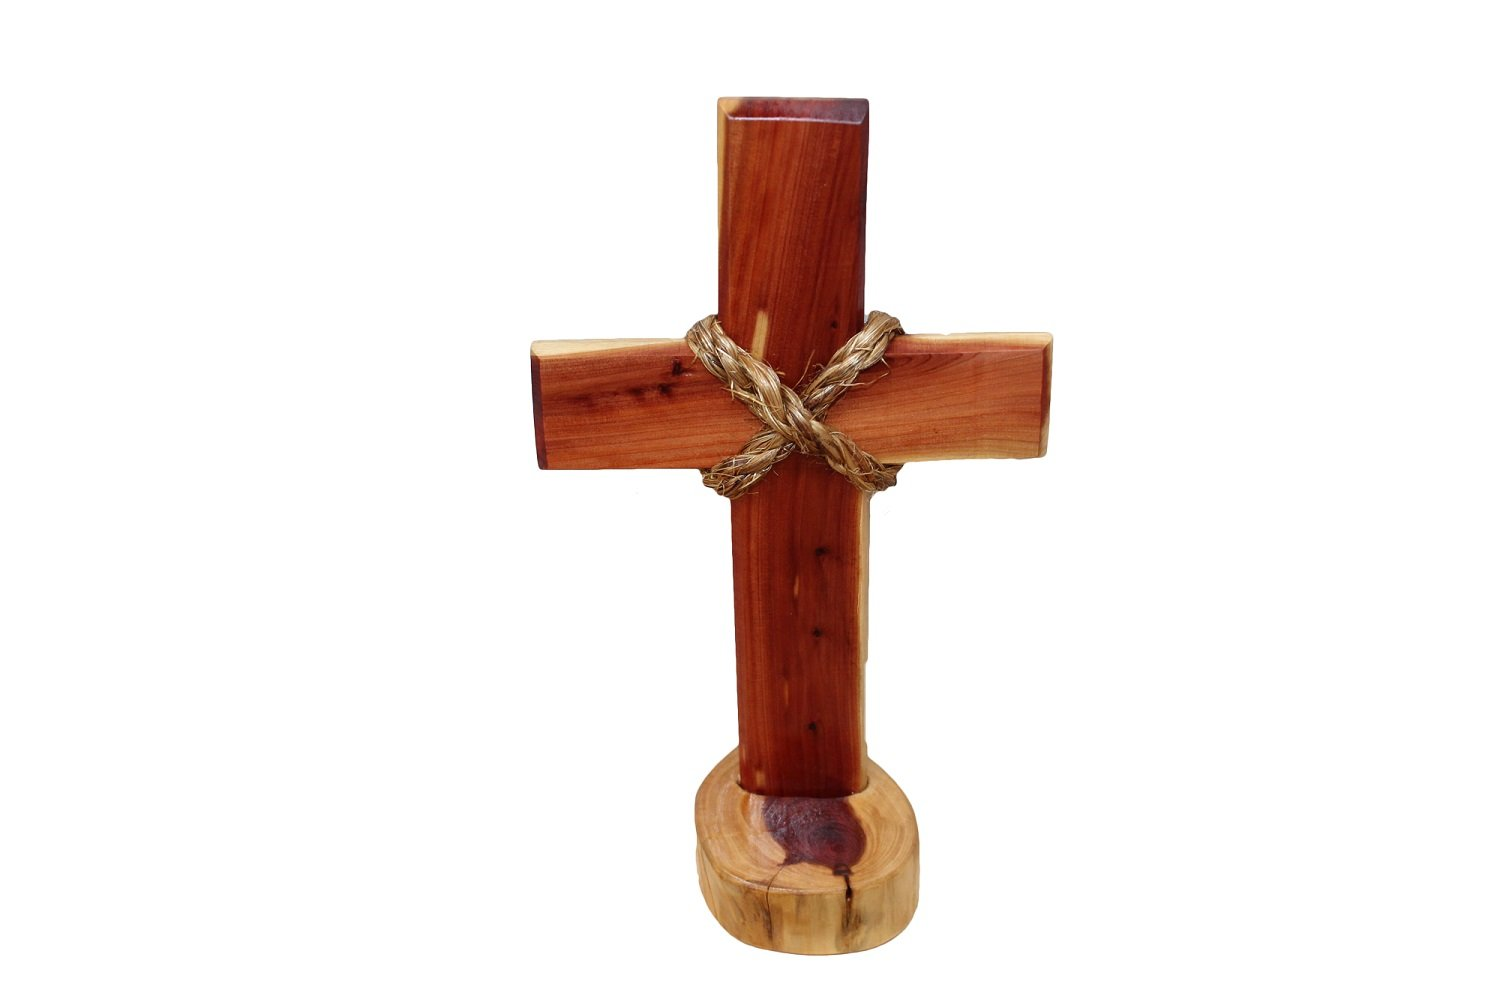 Amazoncom Hand Crafted Wooden Cross On Stand With Rope Design In